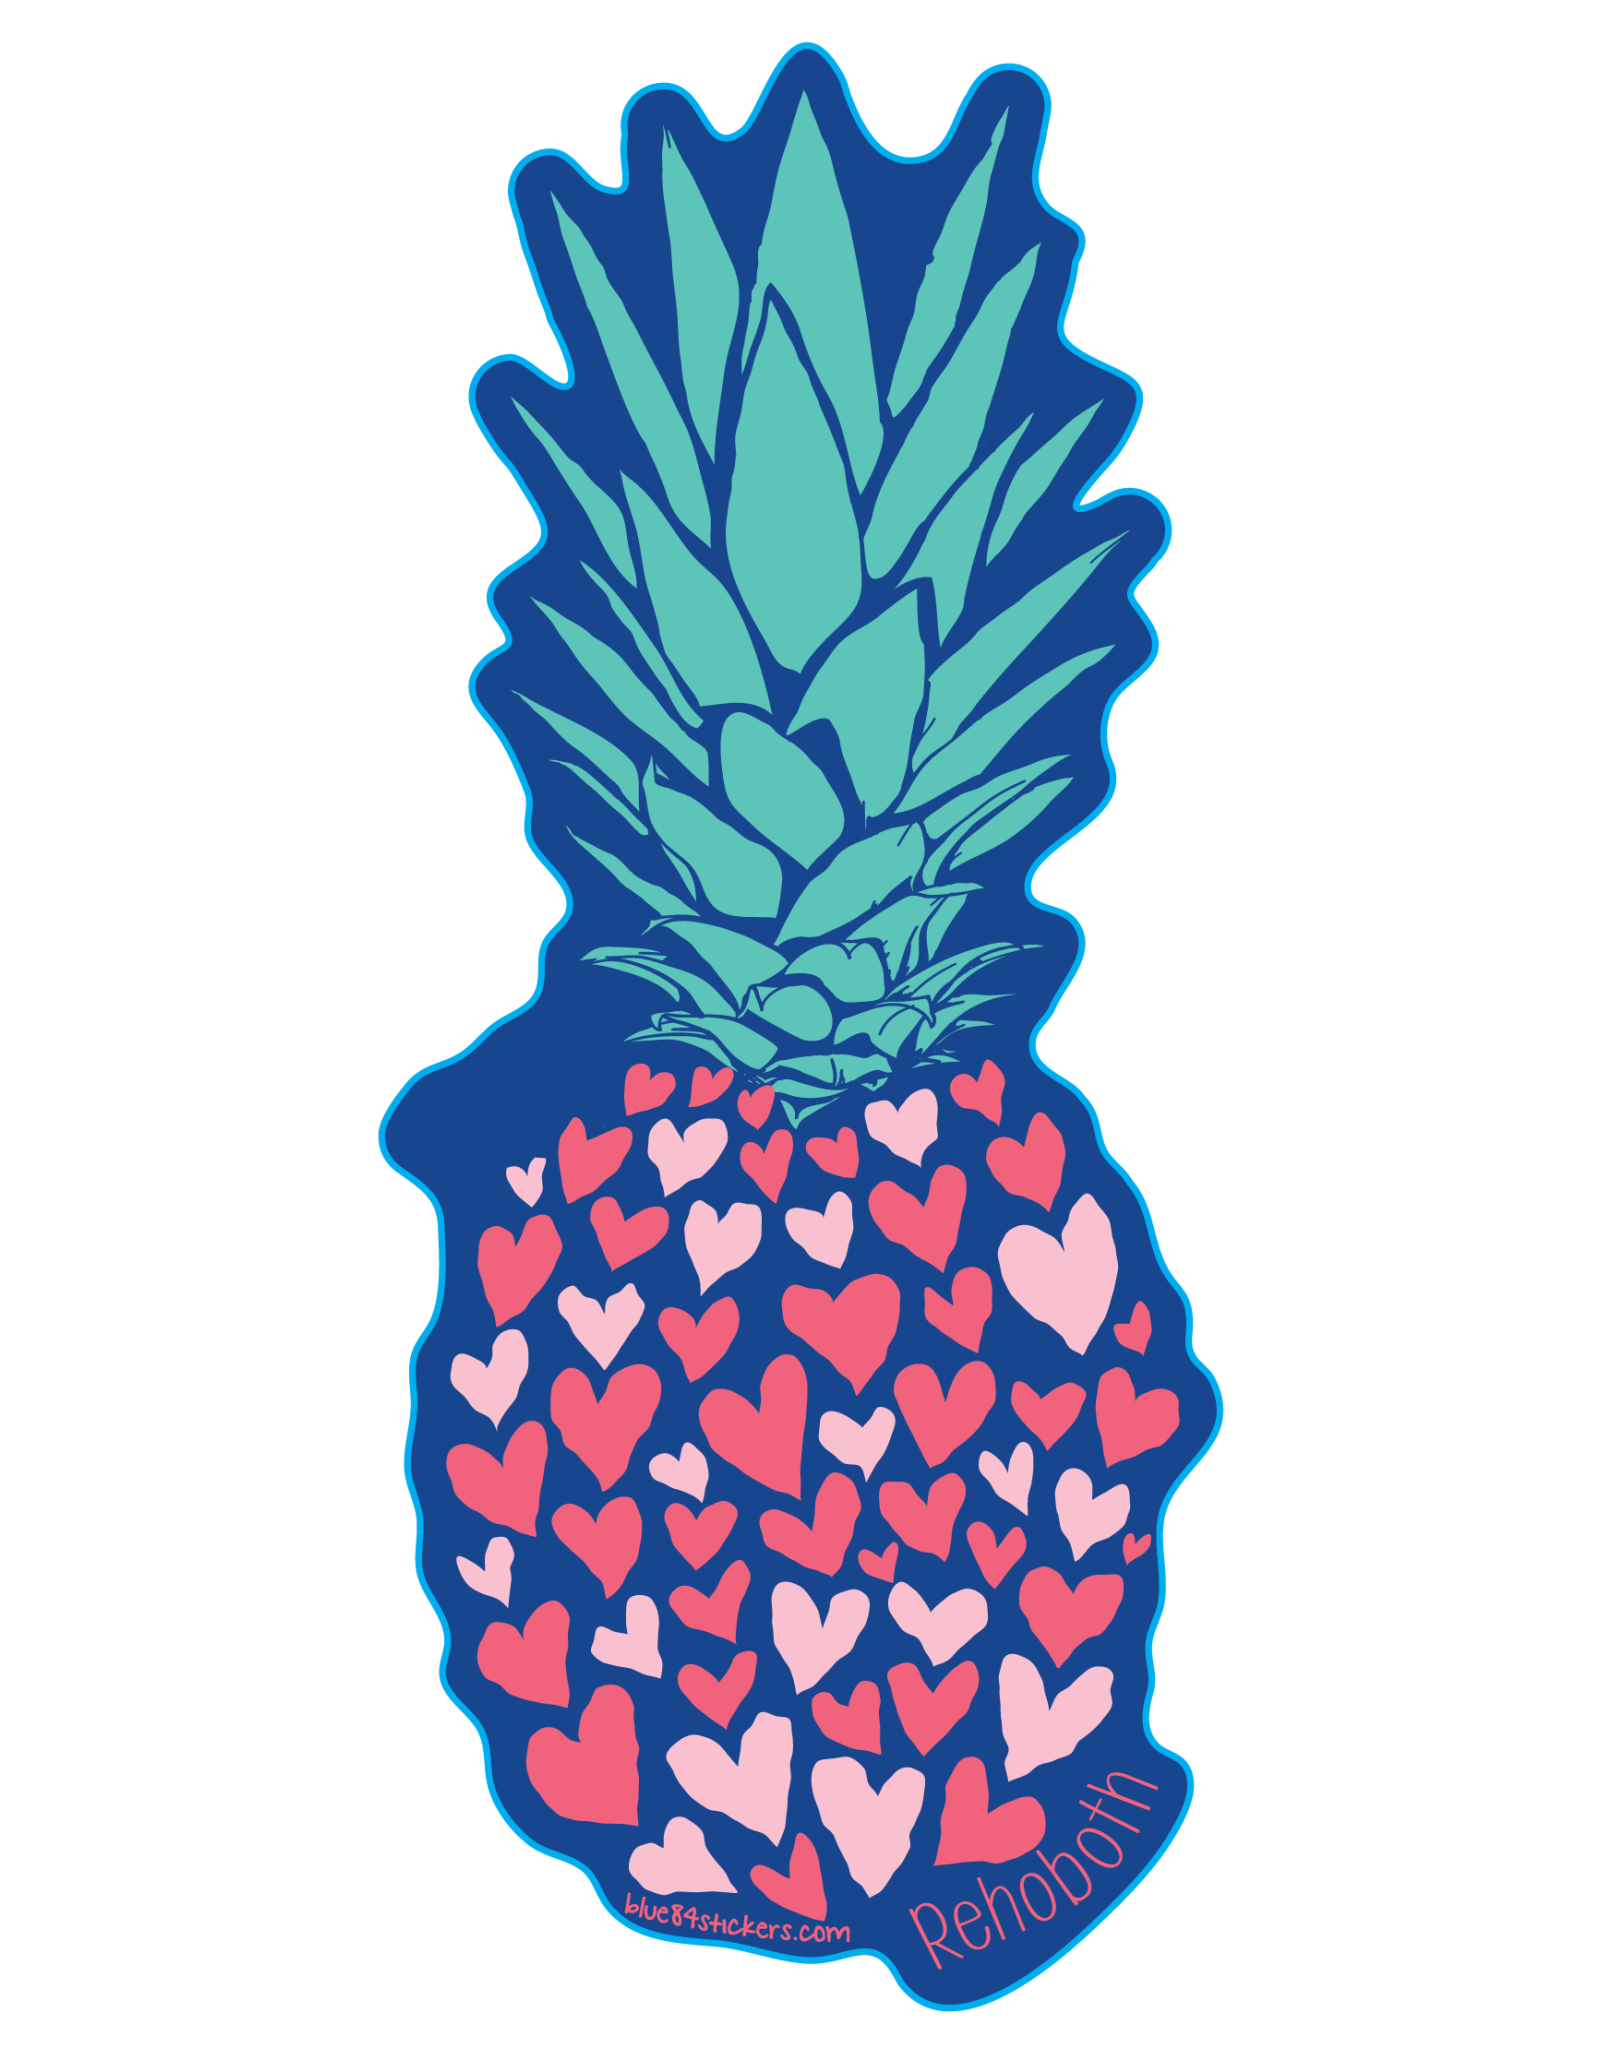 BLUE 84 ACRYLIC MAGNET RECLAIMING PINEAPPLE